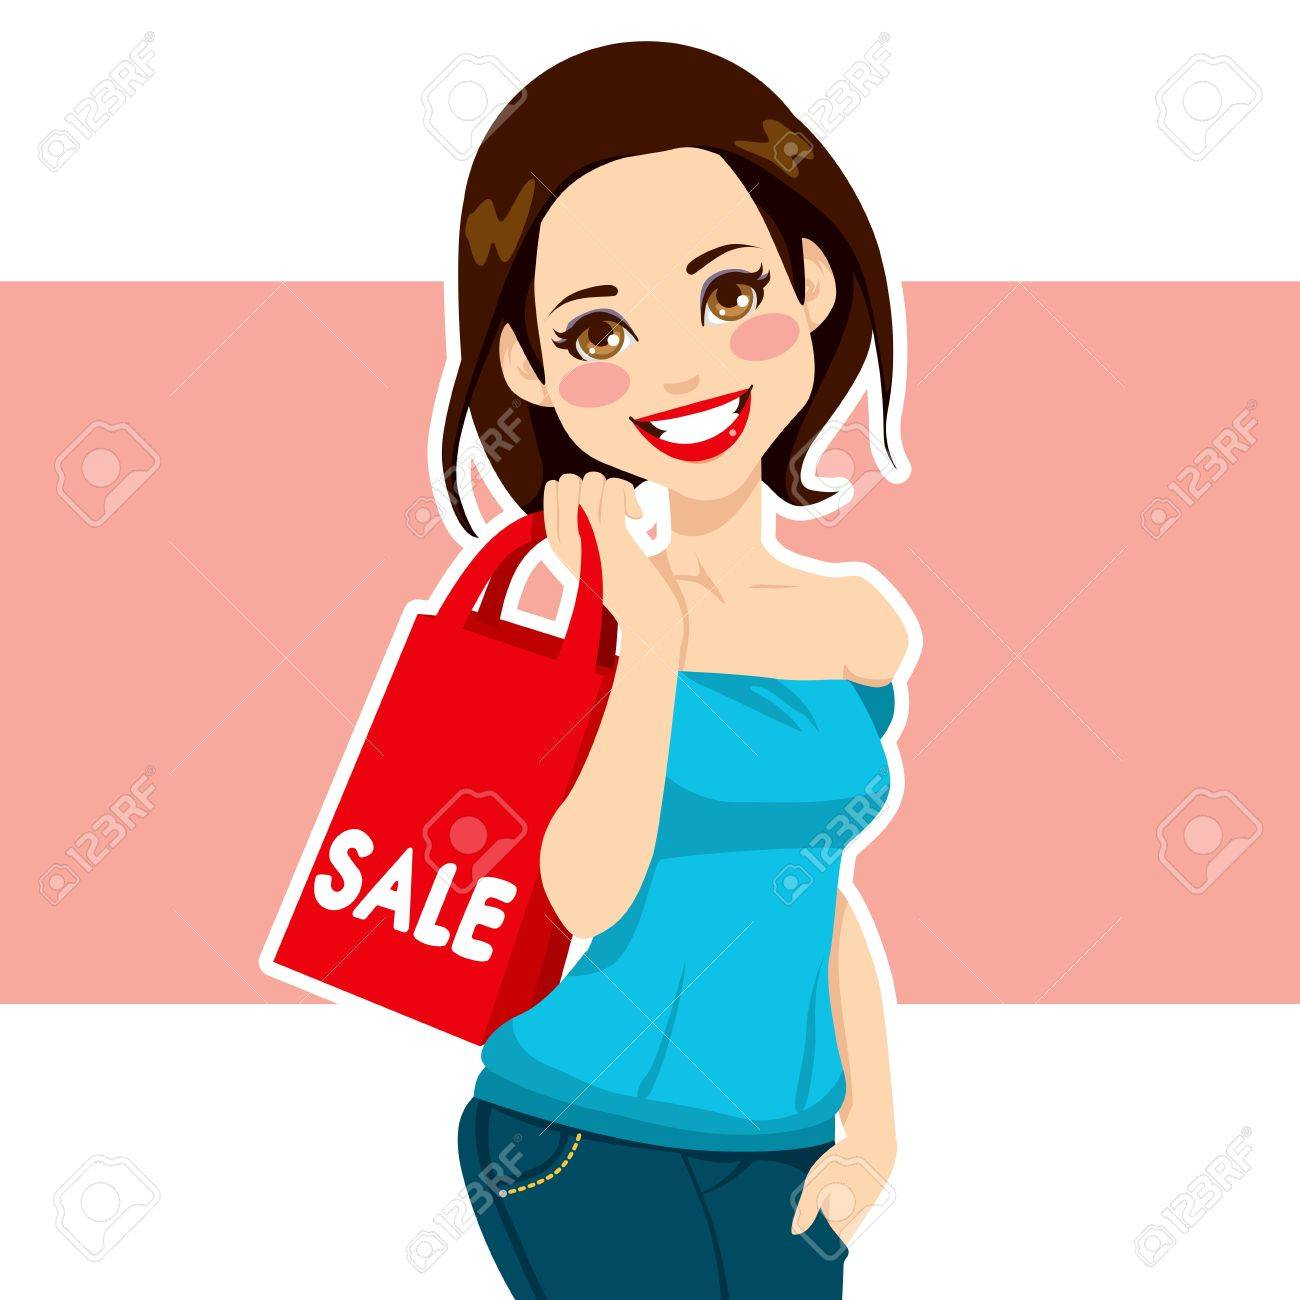 Attractive brunette woman carrying red shopping sales bag Stock Vector - 16484762